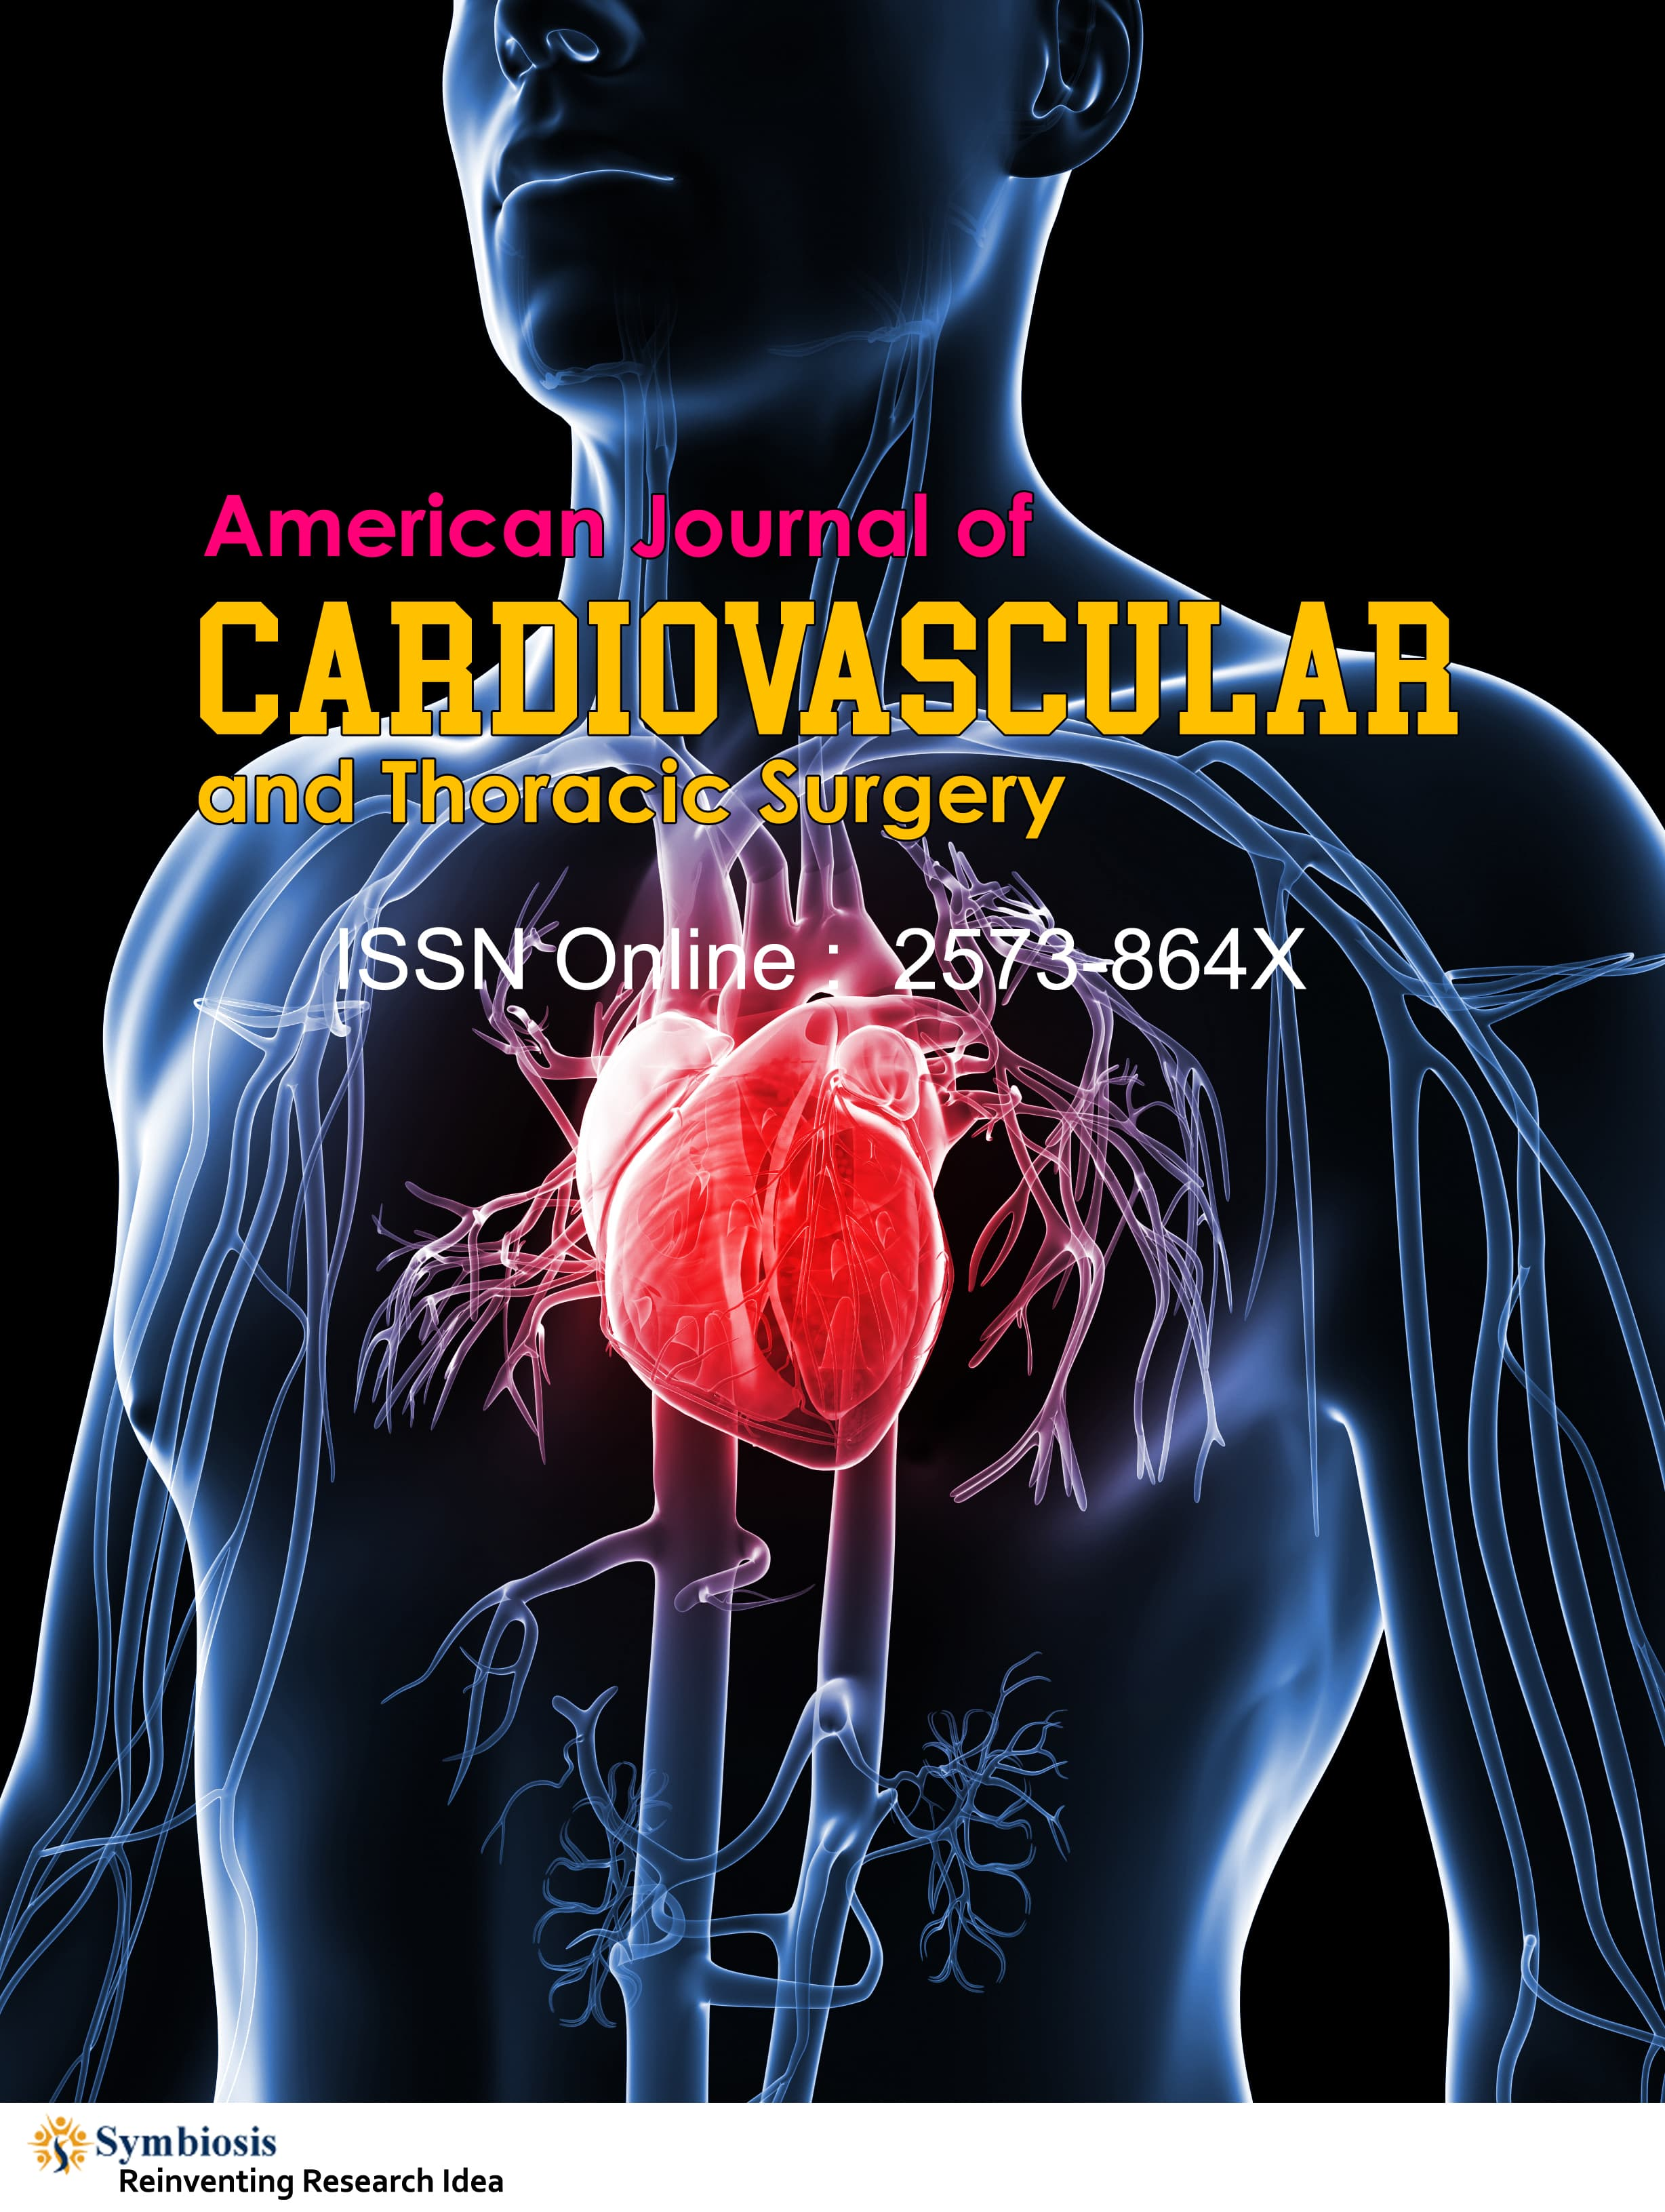 American Journal Of Cardiovascular Surgery Journal Of Thoracic